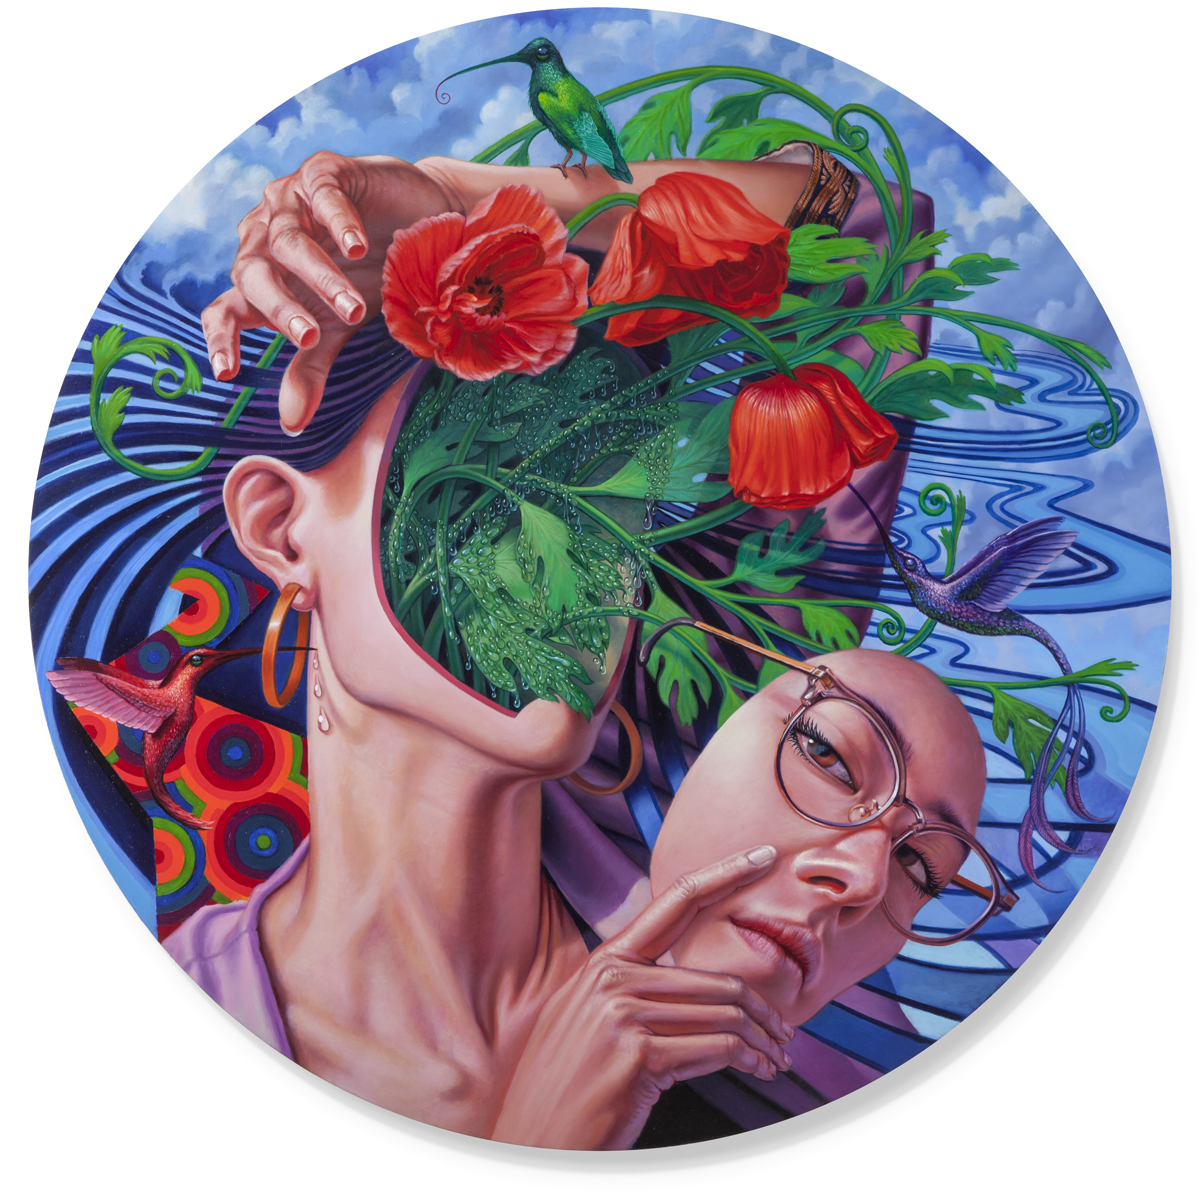 Persephone In Spring, Oil on Wood, 33x33 inches, 2019. Email AustinEddy@gmail.com for purchase enquiries.